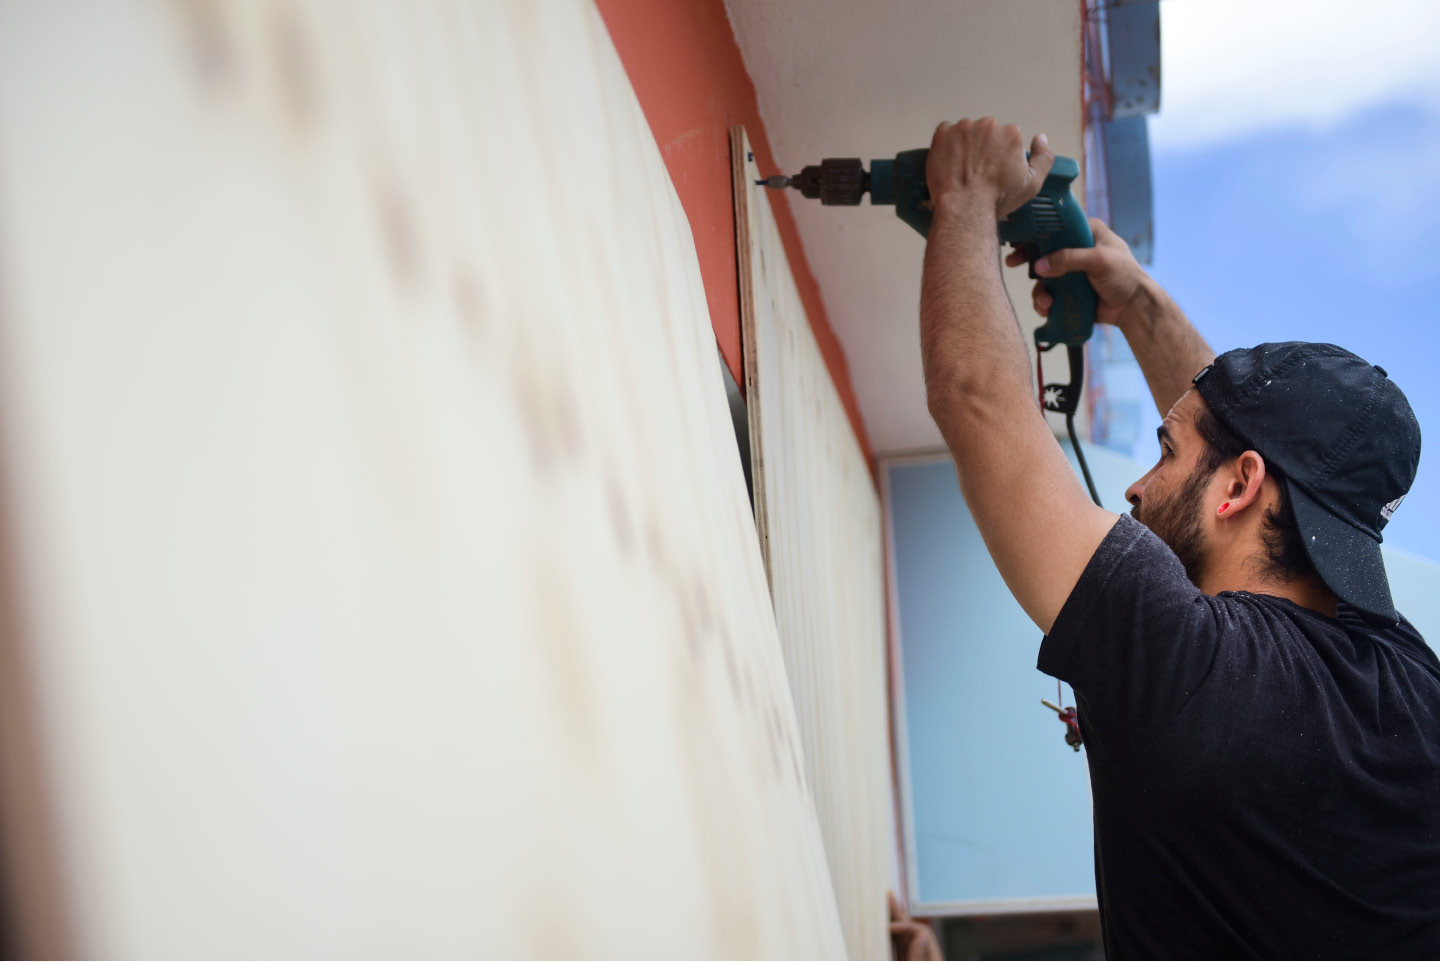 Cyber School Supply employee Christopher Rodriguez installs wood panels on windows in preparation in preparation for Hurricane Irma, in Carolina, Puerto Rico, Tuesday, Sept. 5, 2017. Irma grew into a dangerous Category 5 storm, the most powerful seen in the Atlantic in over a decade, and roared toward islands in the northeast Caribbean Tuesday. (AP Photo/Carlos Giusti)